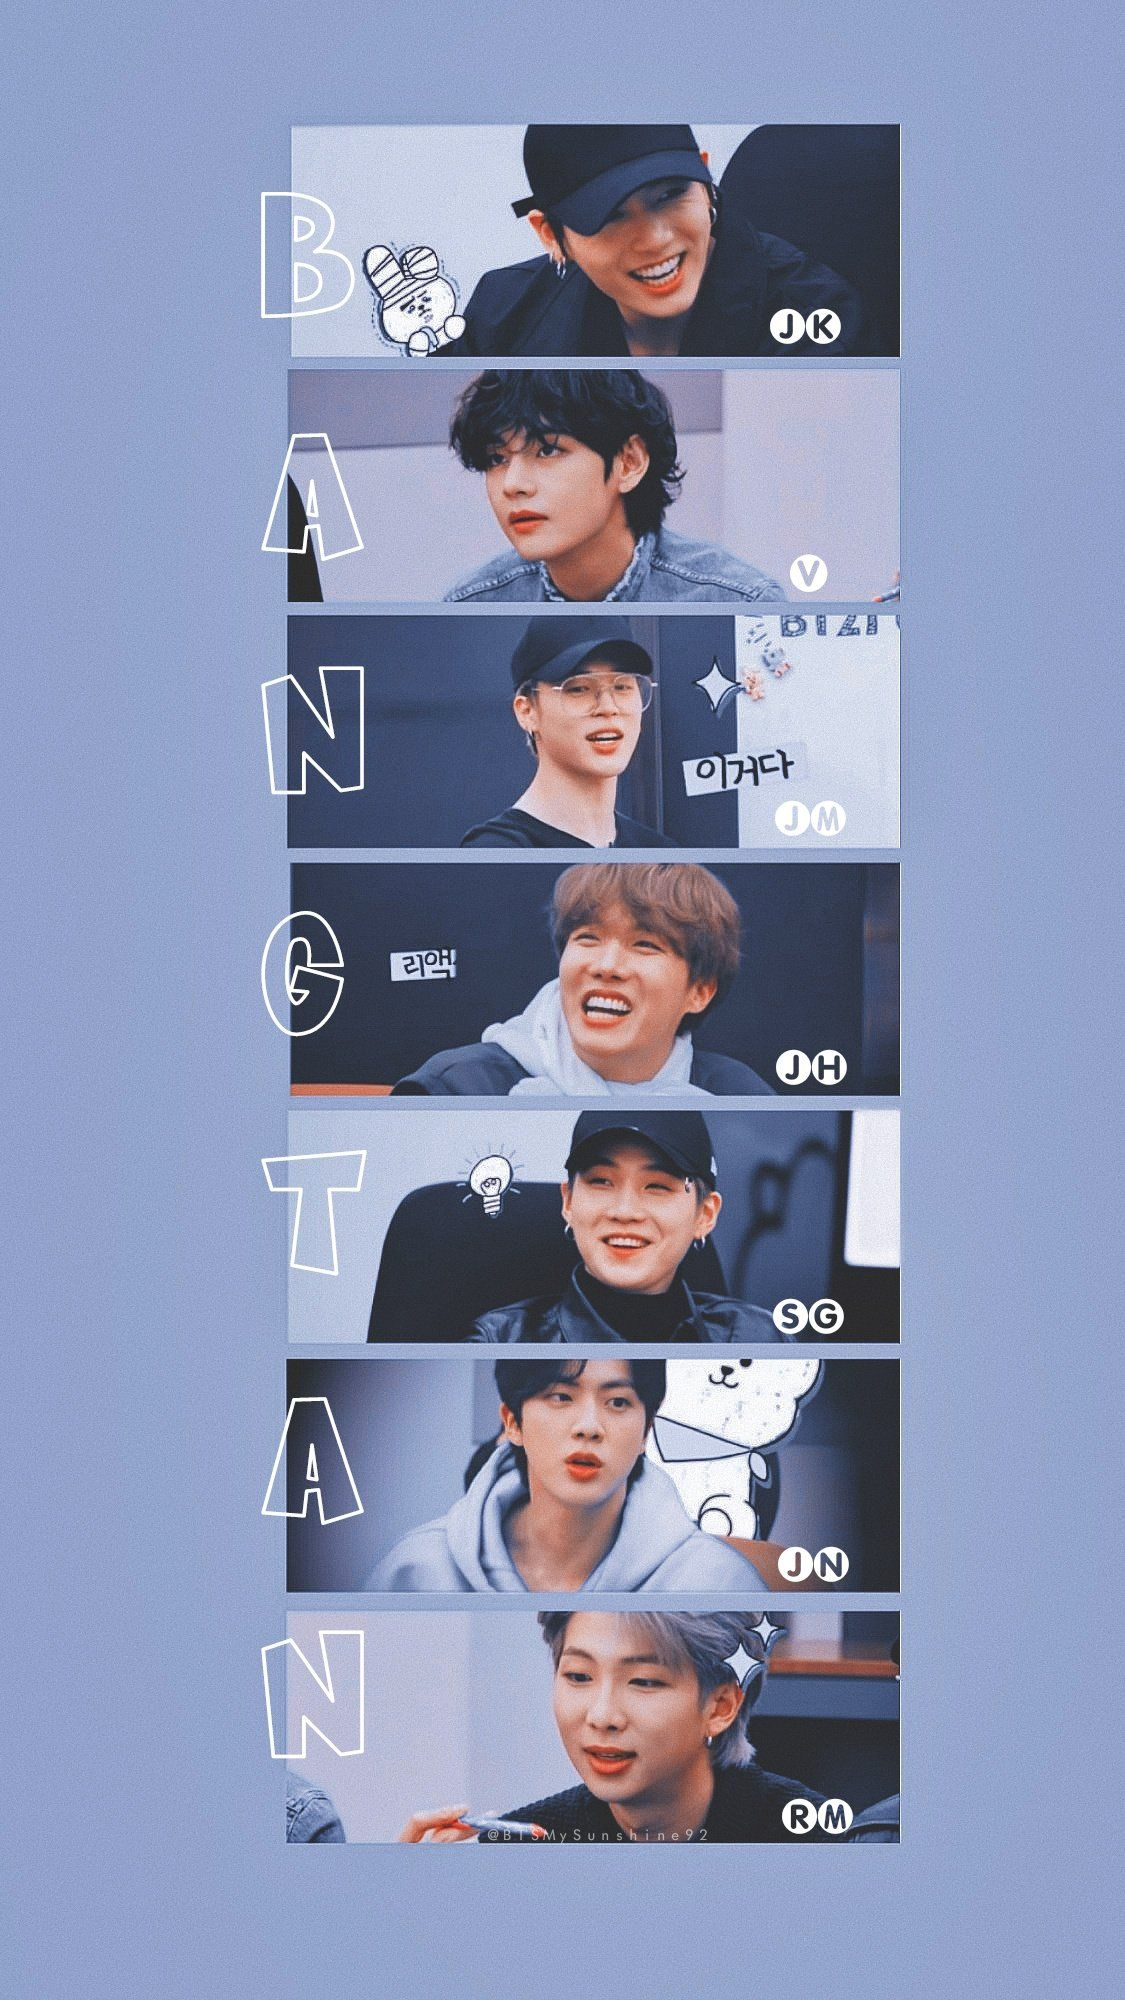 ṡṡẗeḟy 501ḟoṛeṿeṛ On Twitter Bts Aesthetic Wallpaper For Phone Bts Wallpaper Bts Backgrounds